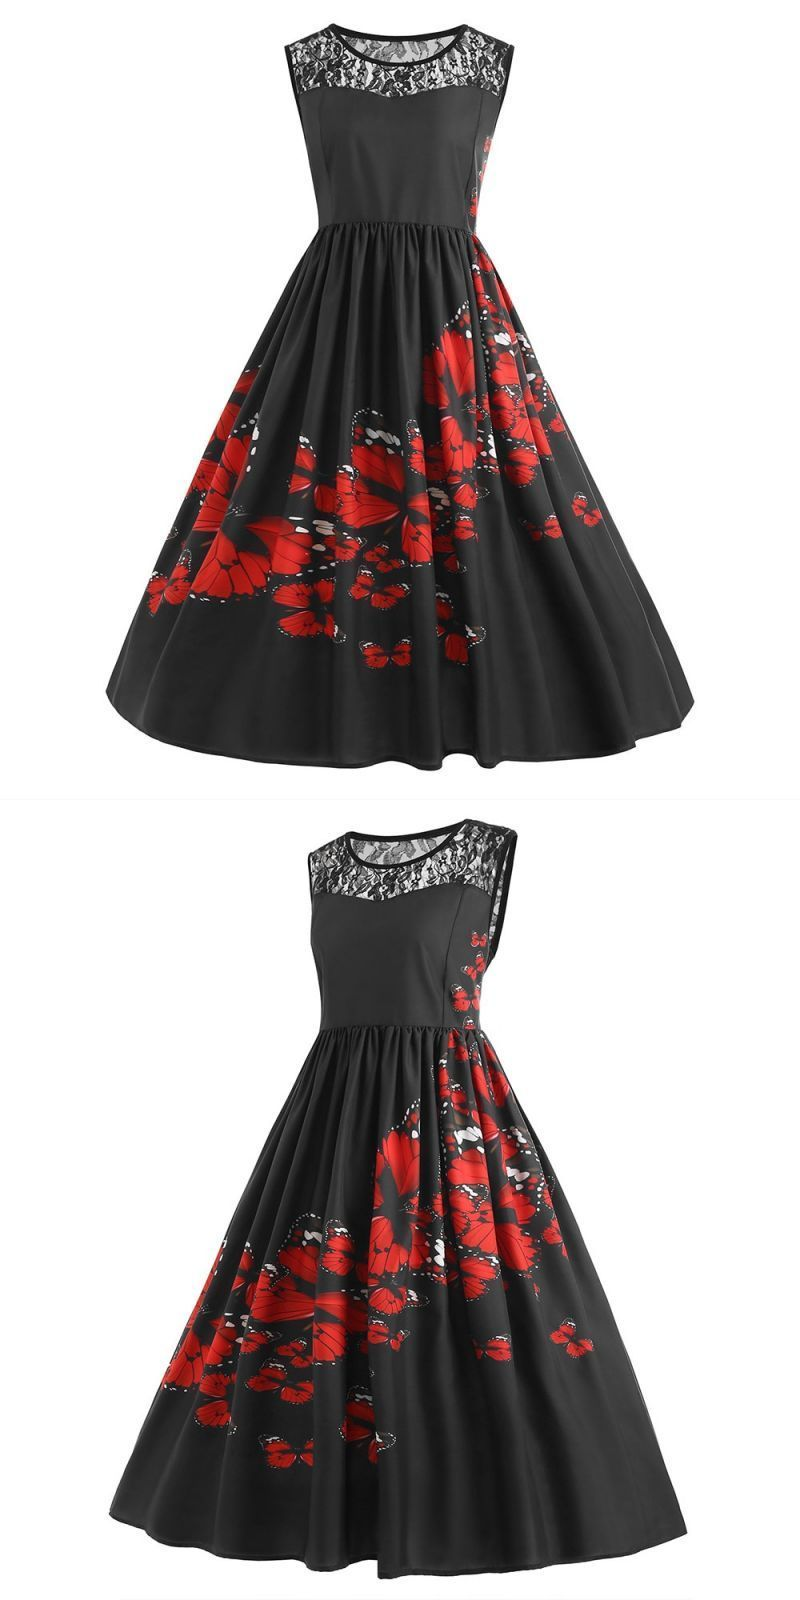 5xl big size dress 2018 summer dresses women plus size lace patchwork  butterfly print party evening prom swing dress dropshippin  cotton  casual   loose ... 7b321797c622